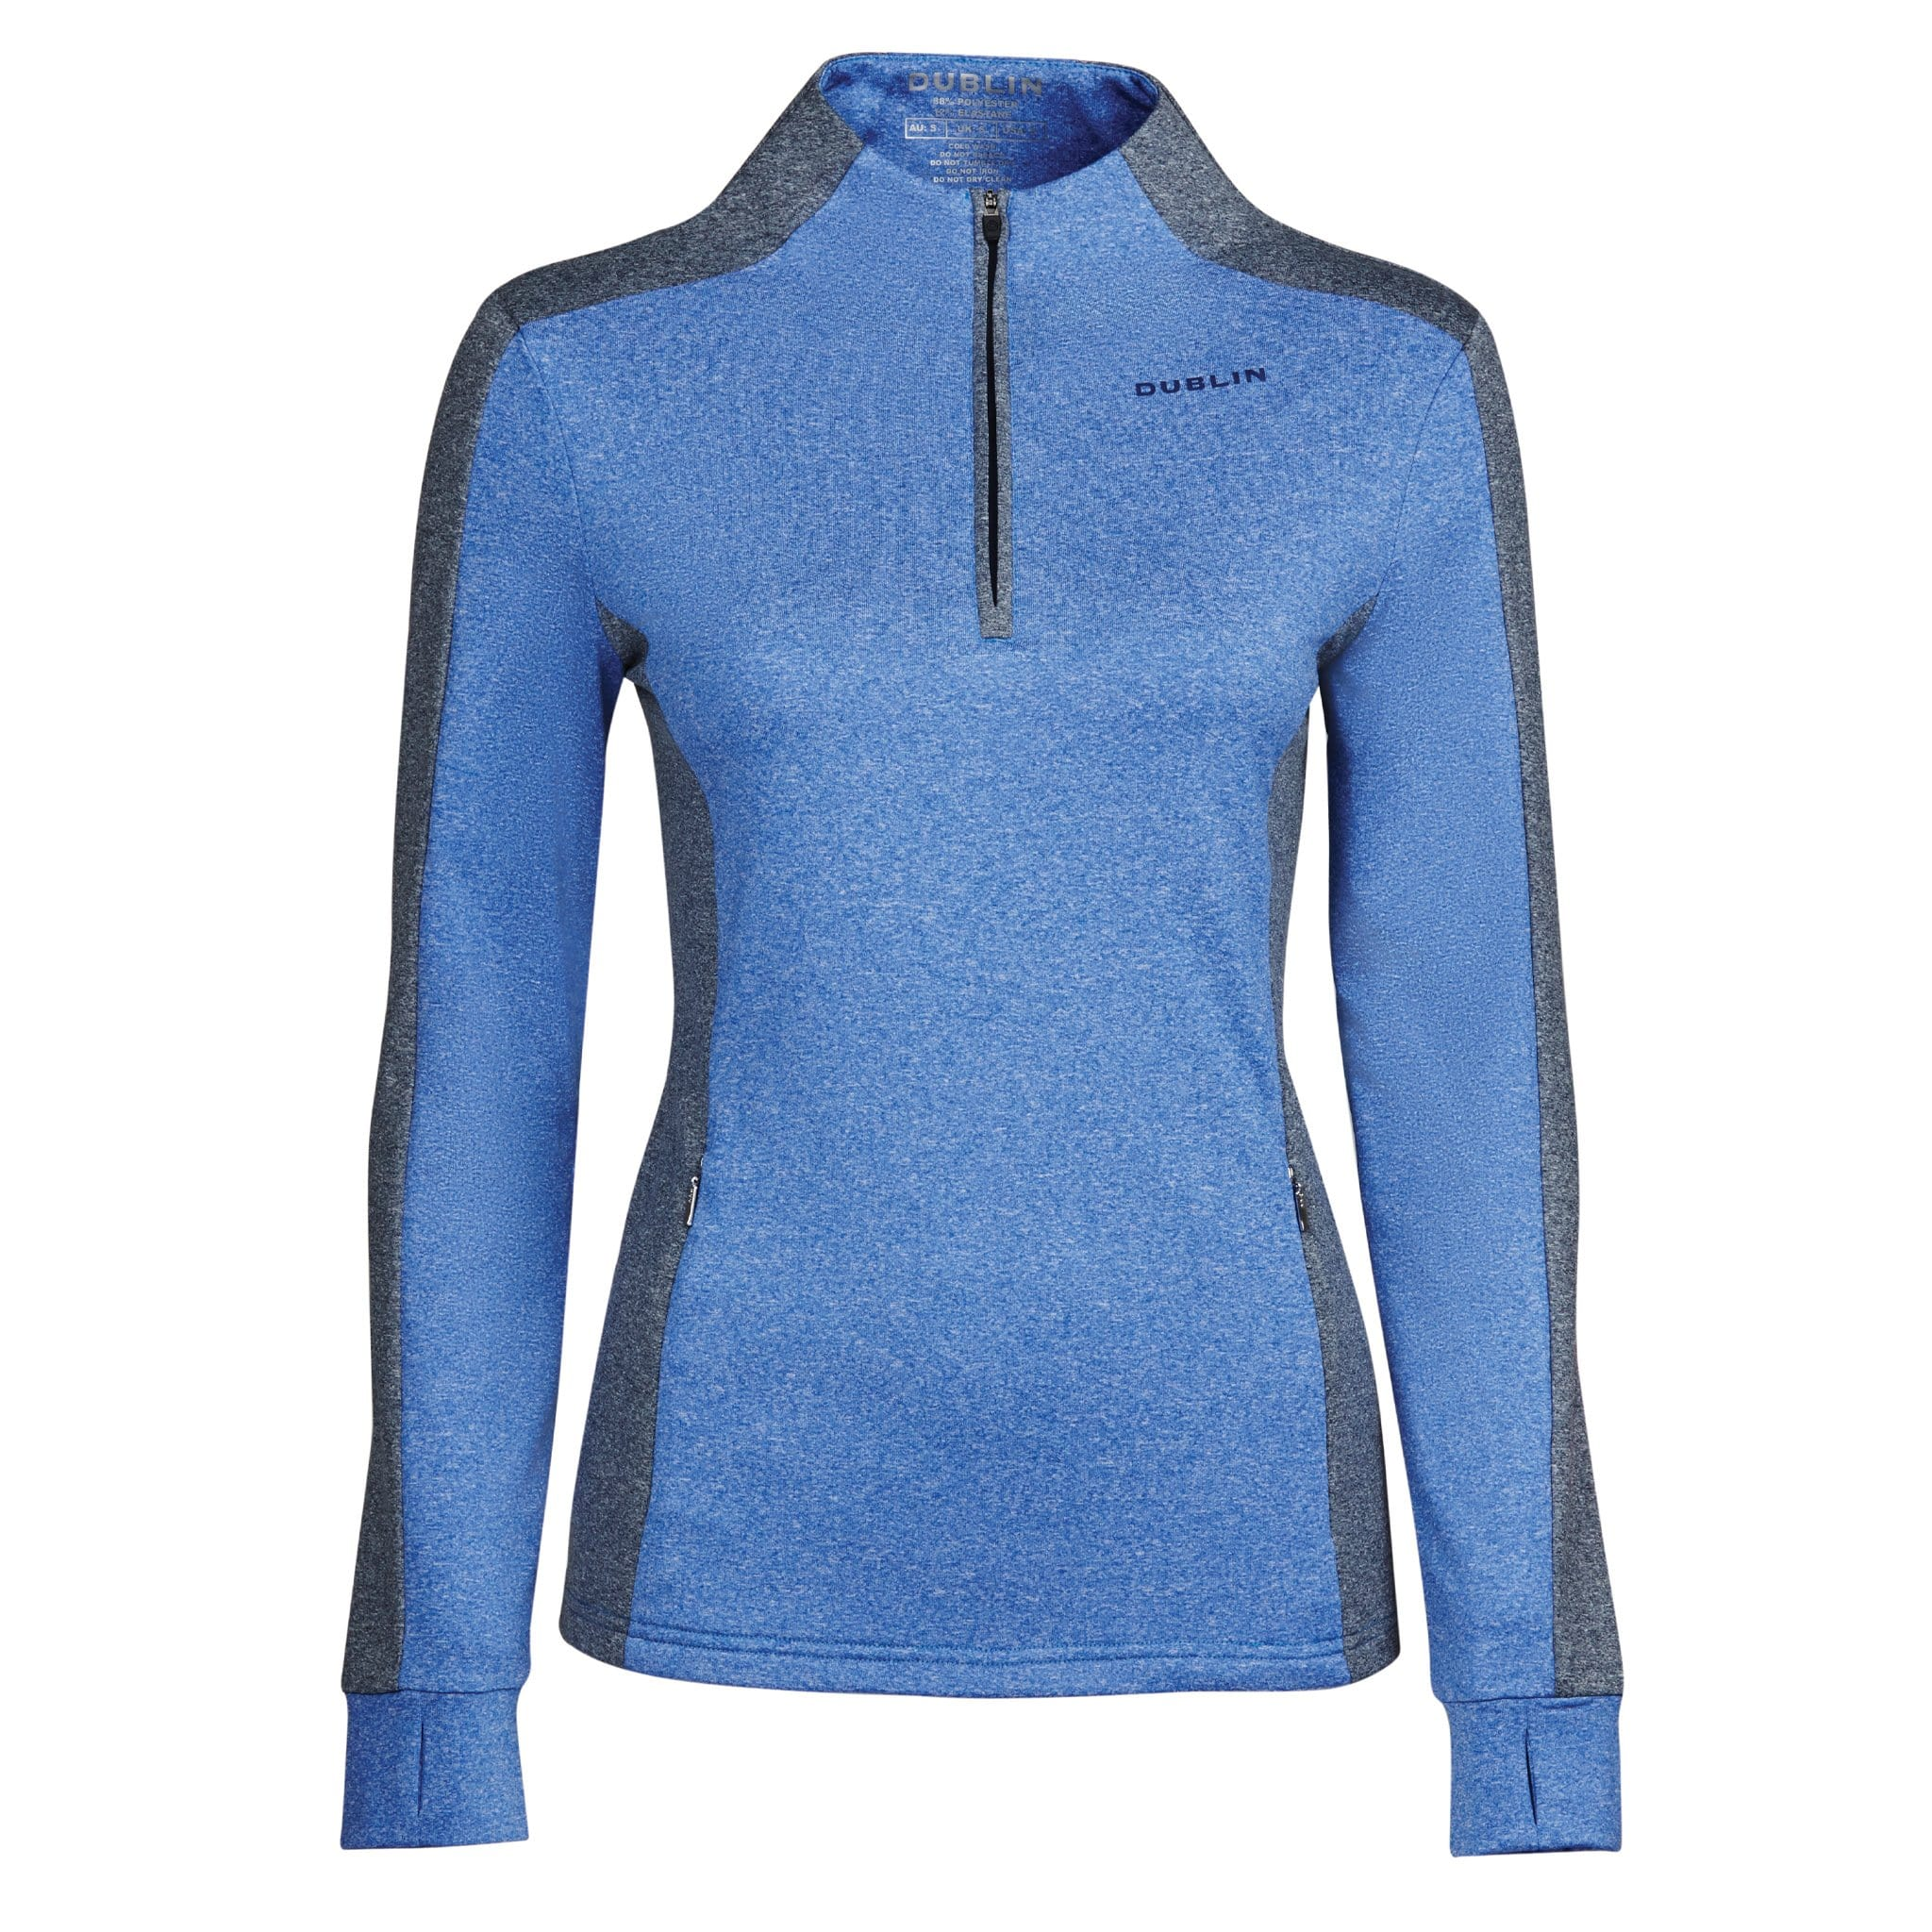 Dublin Rachel 1/2 Zip Thermal Top Dazzling Blue 1000500001.